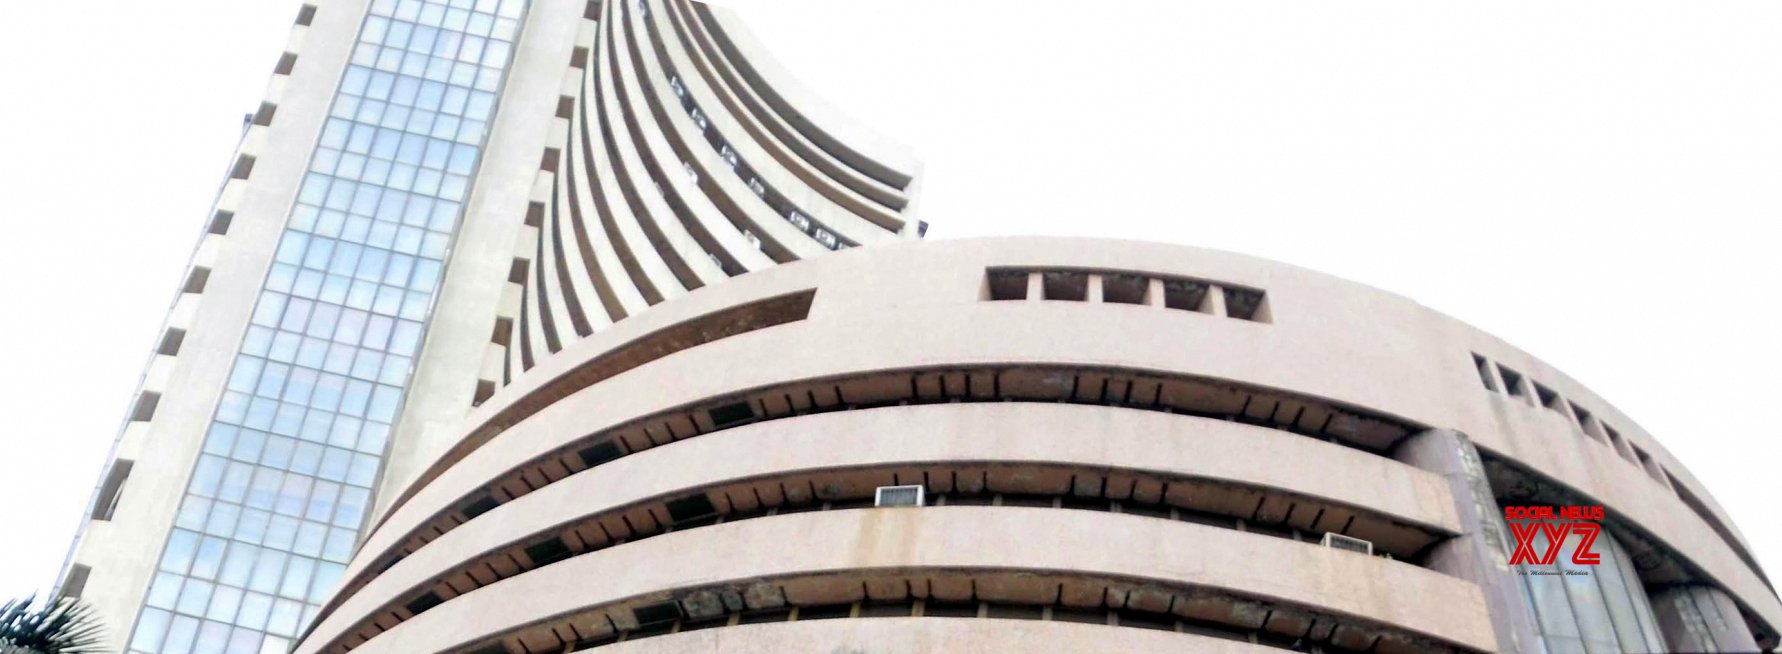 Sensex down 120 points over profit booking, global cues